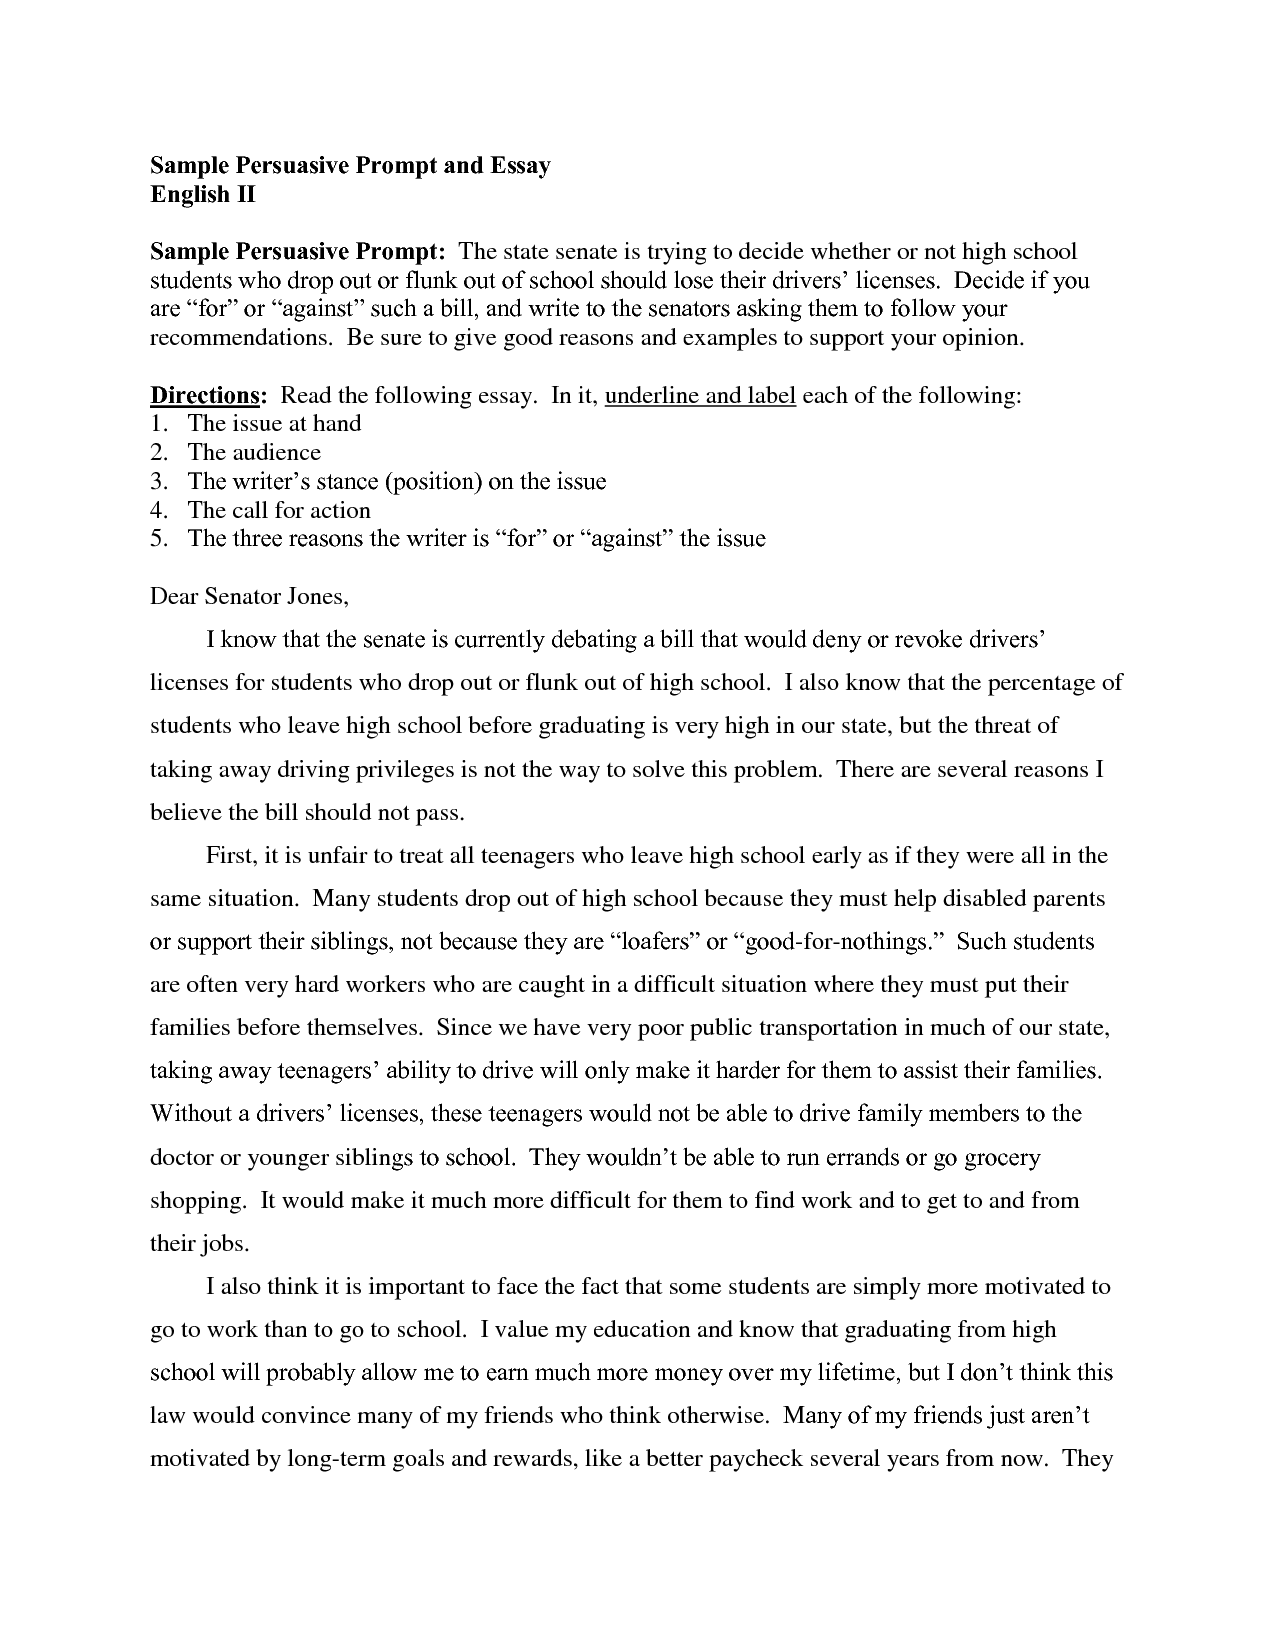 013 Research Paper Easy Topic Persuasive Essay Topics For High School Sample Ideas Highschool Students Good Prompt Funny Fun List Of Seniors Writing English Sensational To Write About Psychology American History Full